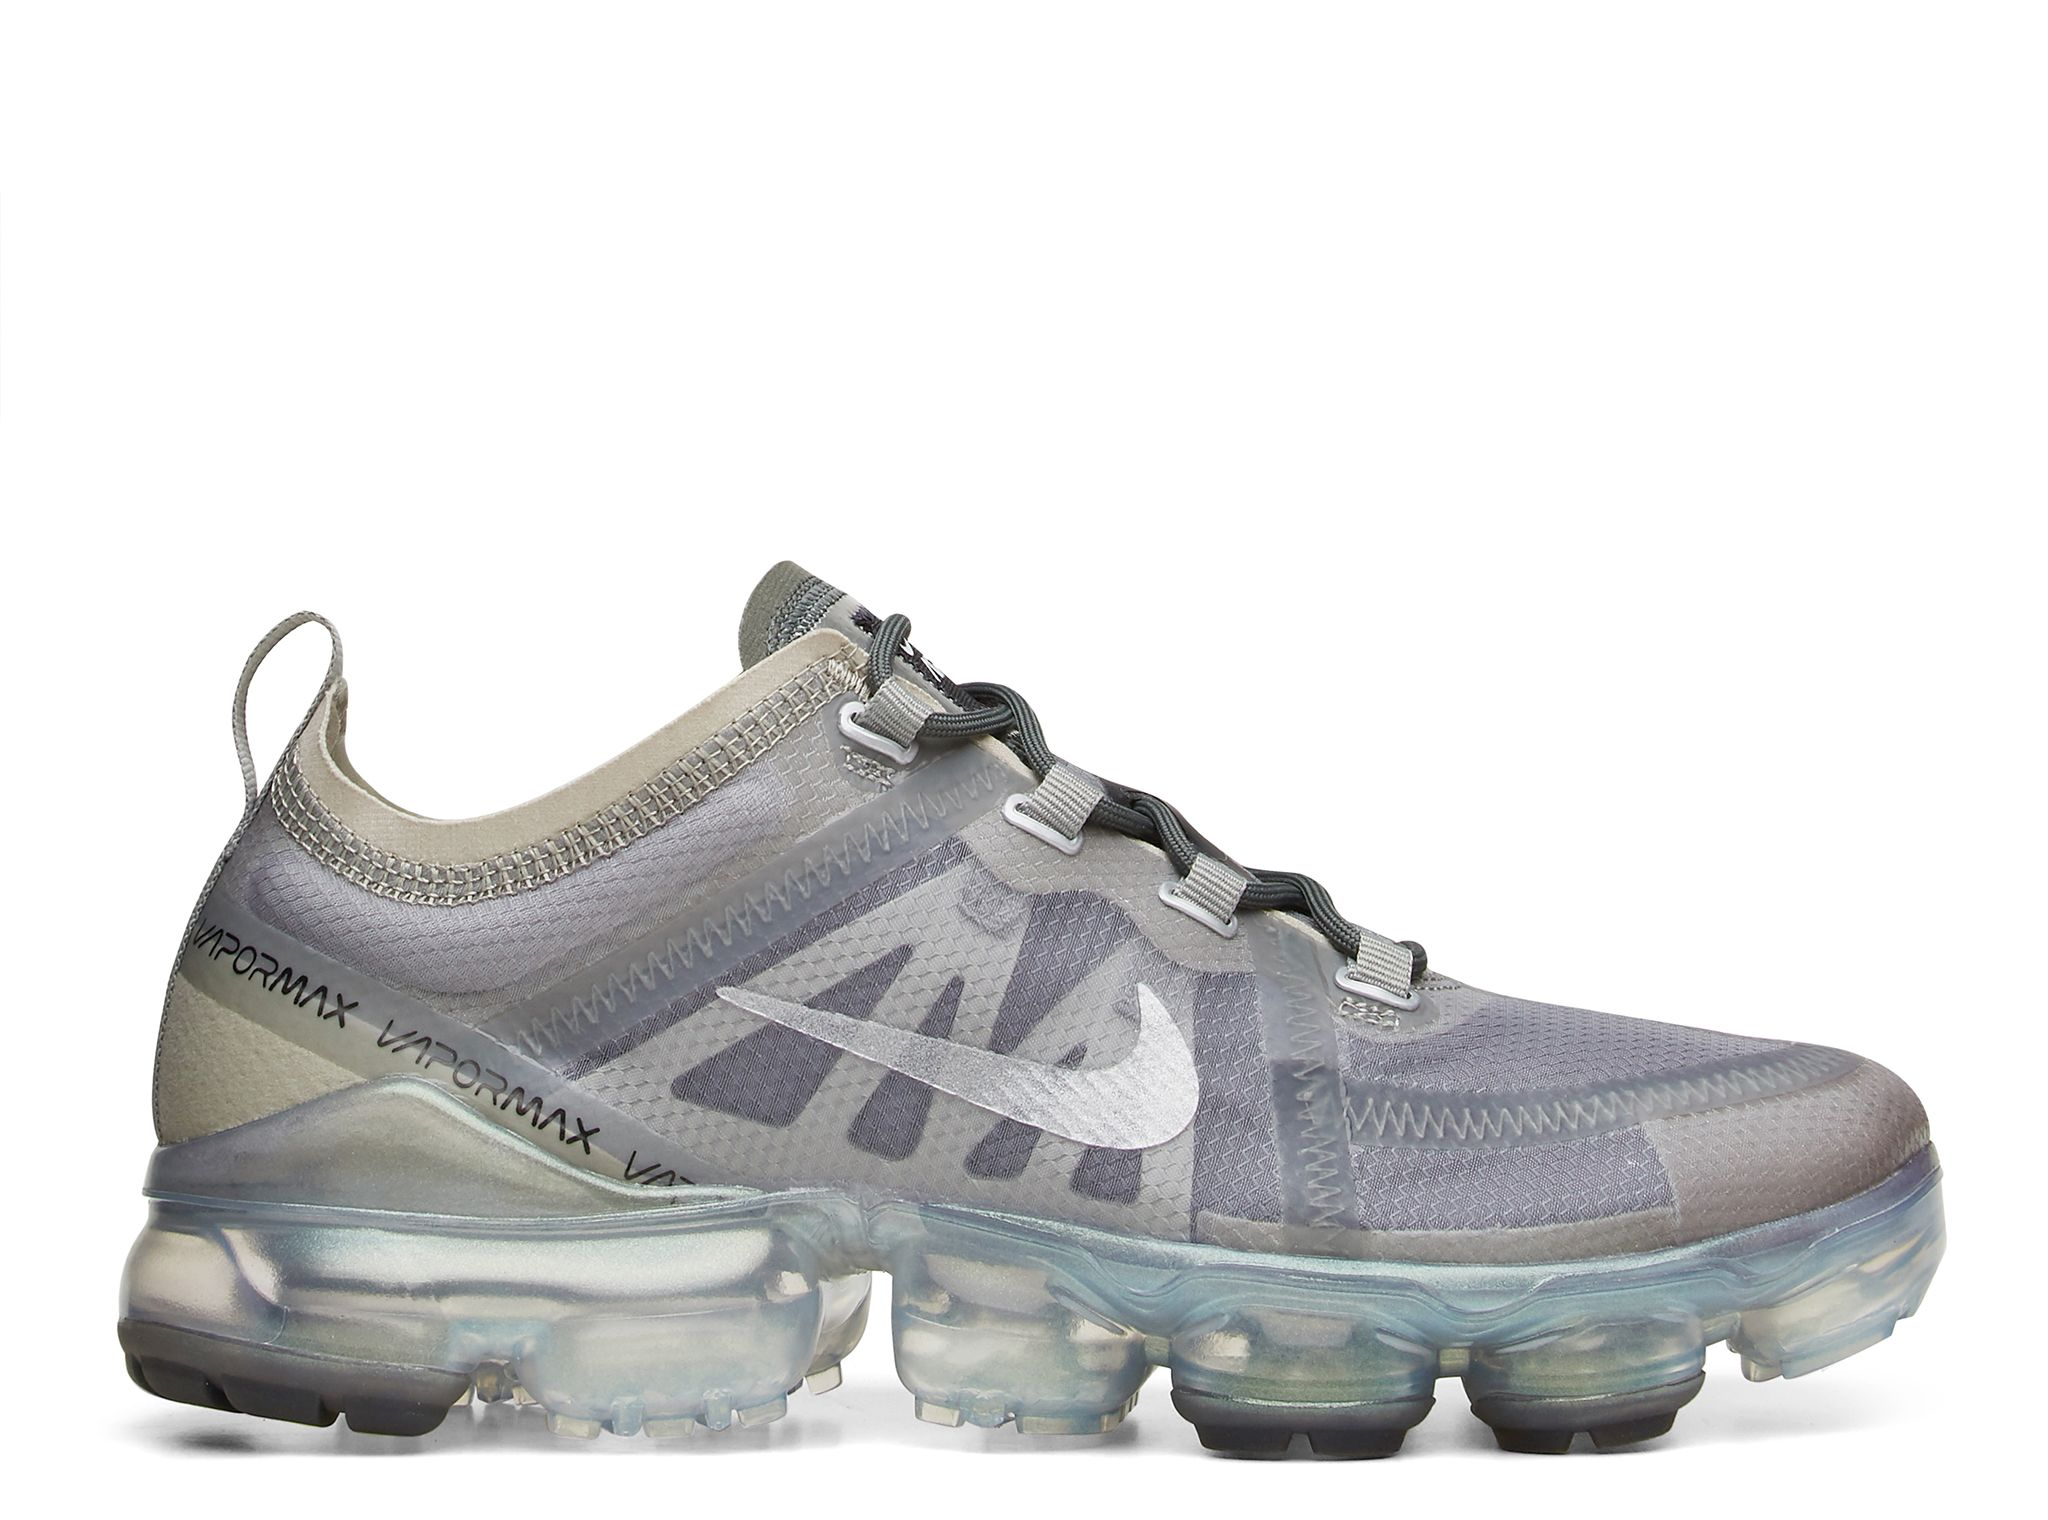 618801dfad Nike Wmns Air Vapormax 2019 Impossible Air | Nike Shoues in 2019 ...